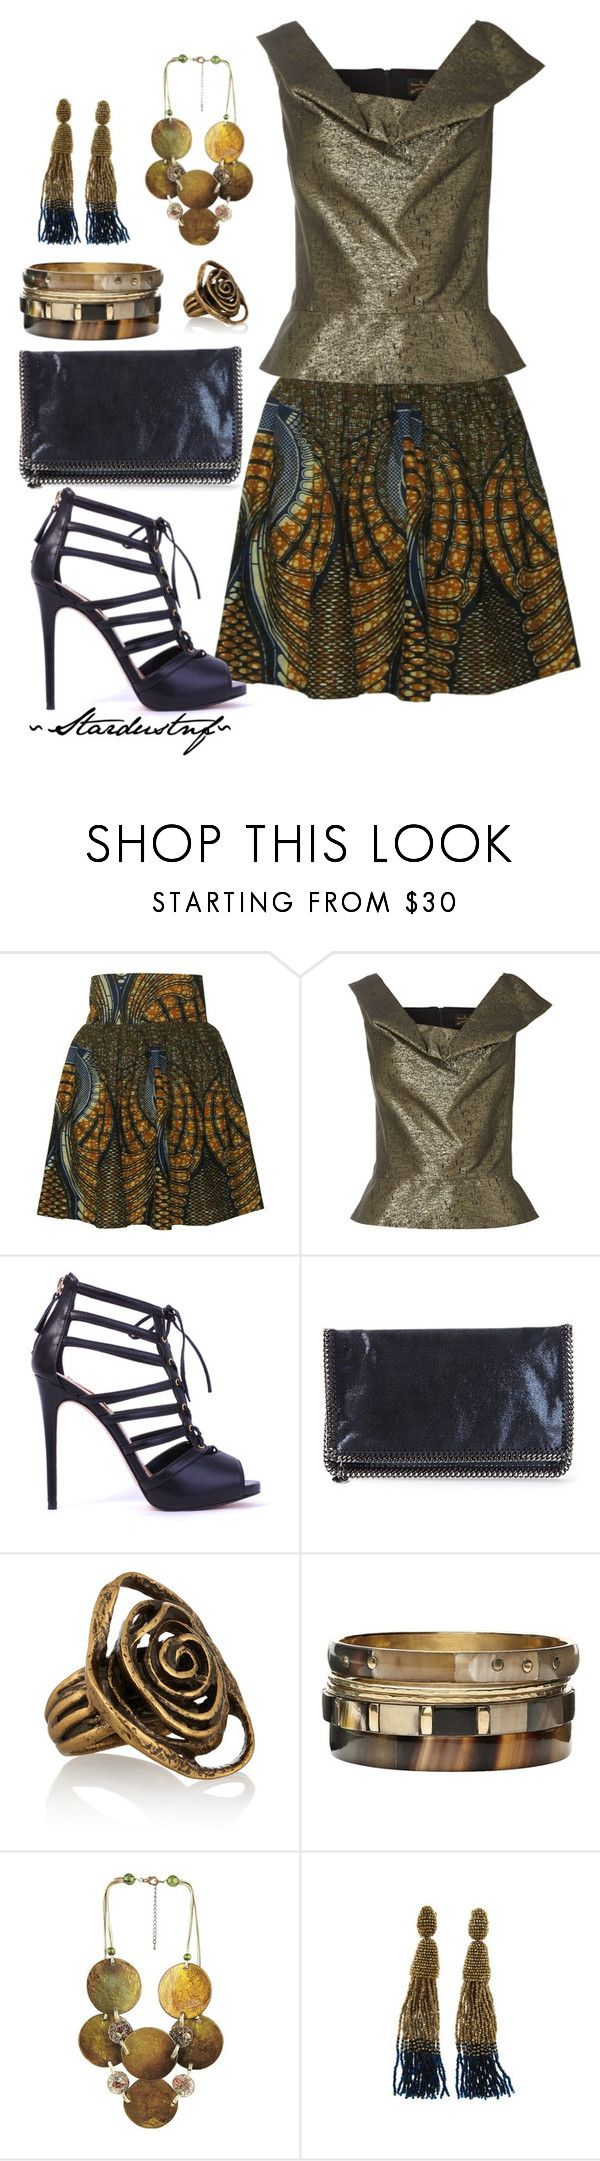 """""""Tribal Print Skirt"""" by stardustnf ❤ liked on Polyvore featuring FAIR+true, Vivienne Westwood Anglomania, STELLA McCARTNEY, Oscar de la Renta and Witchery"""